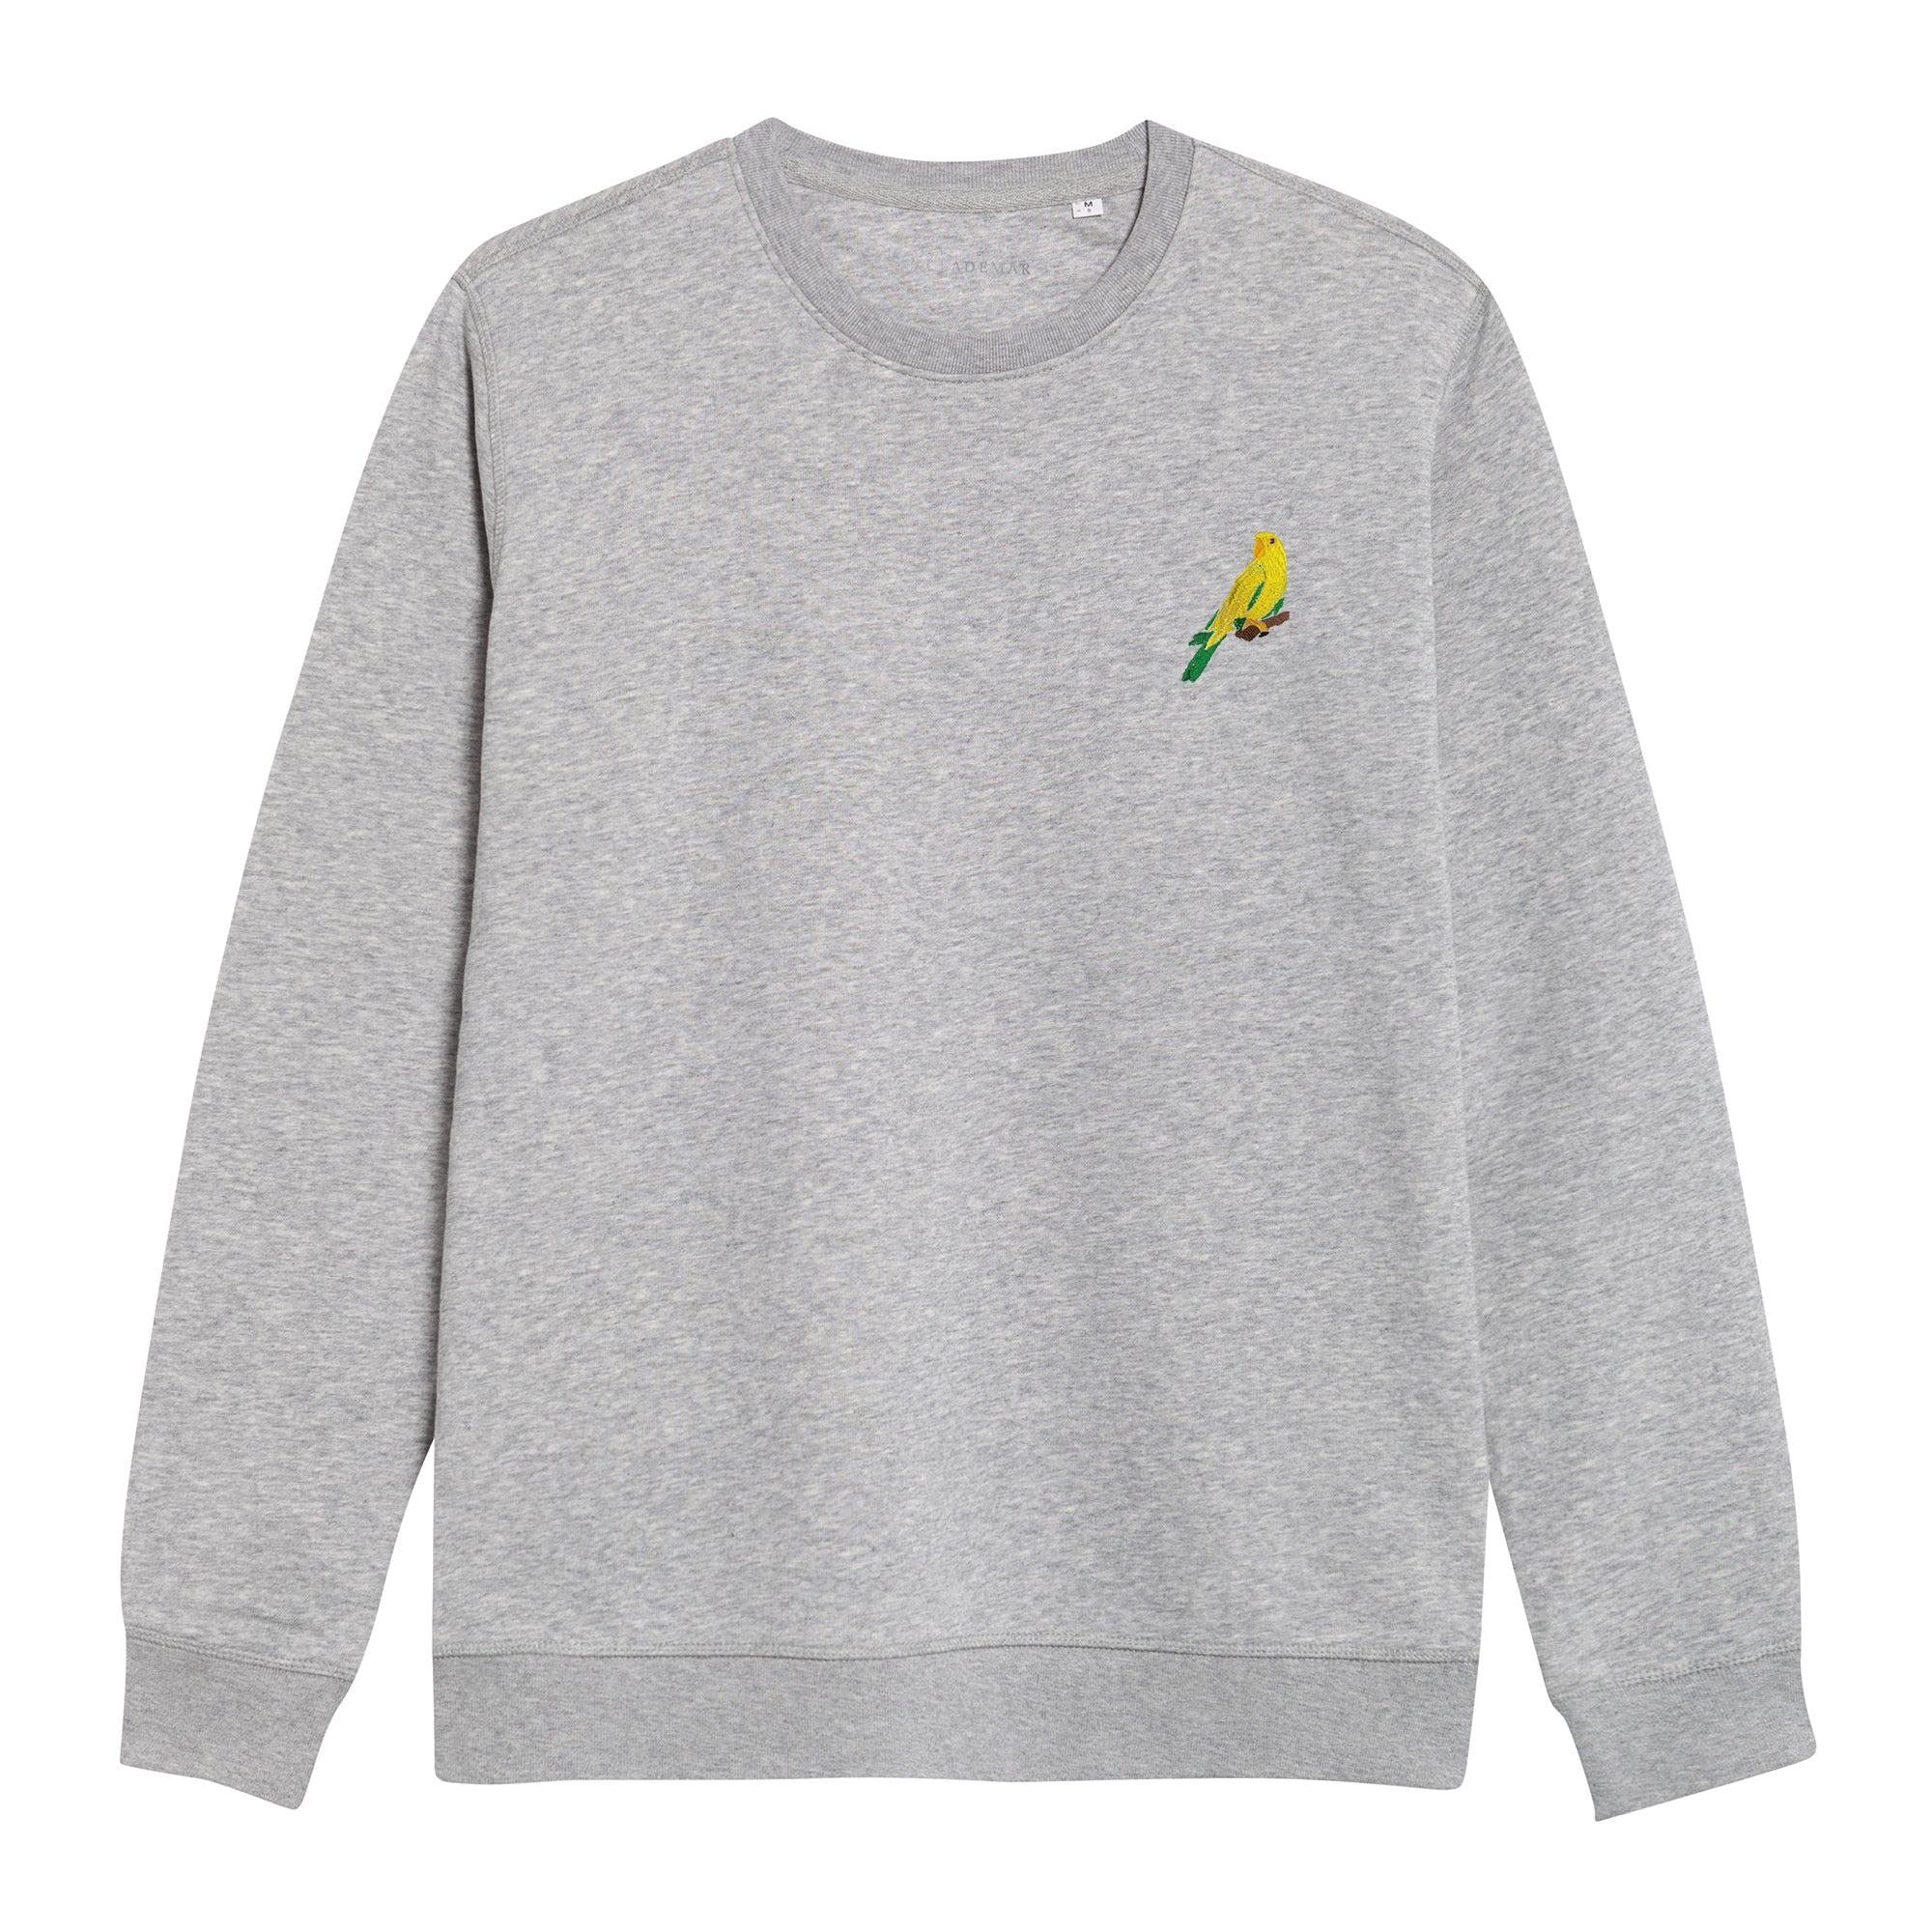 Grey Sweatshirt. The Parrot